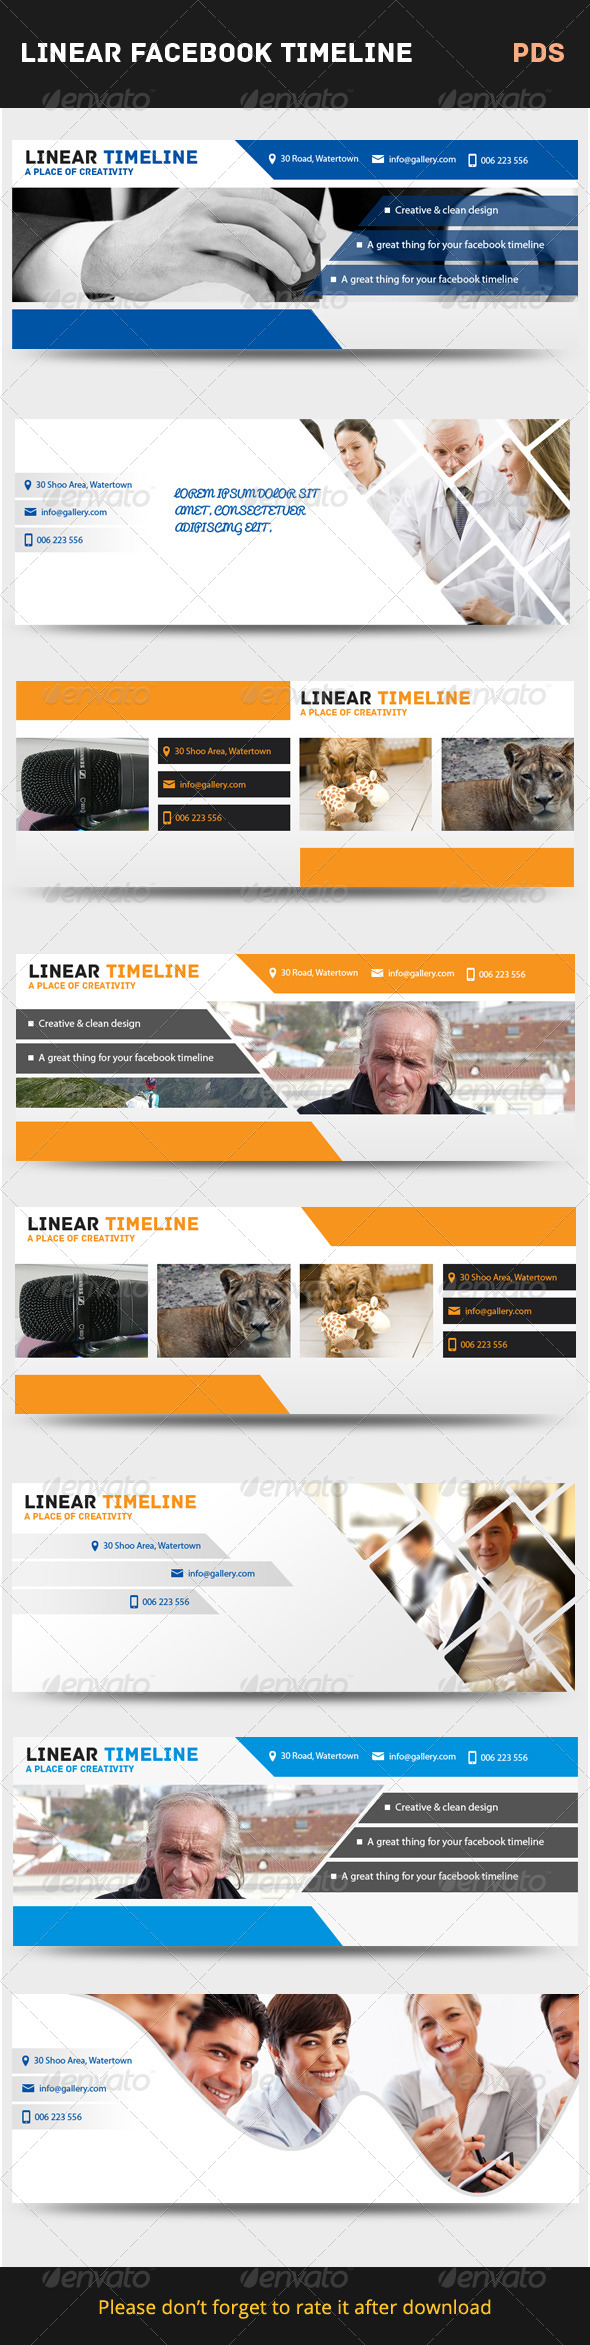 GraphicRiver Linear Facebook Timeline Cover 7675443